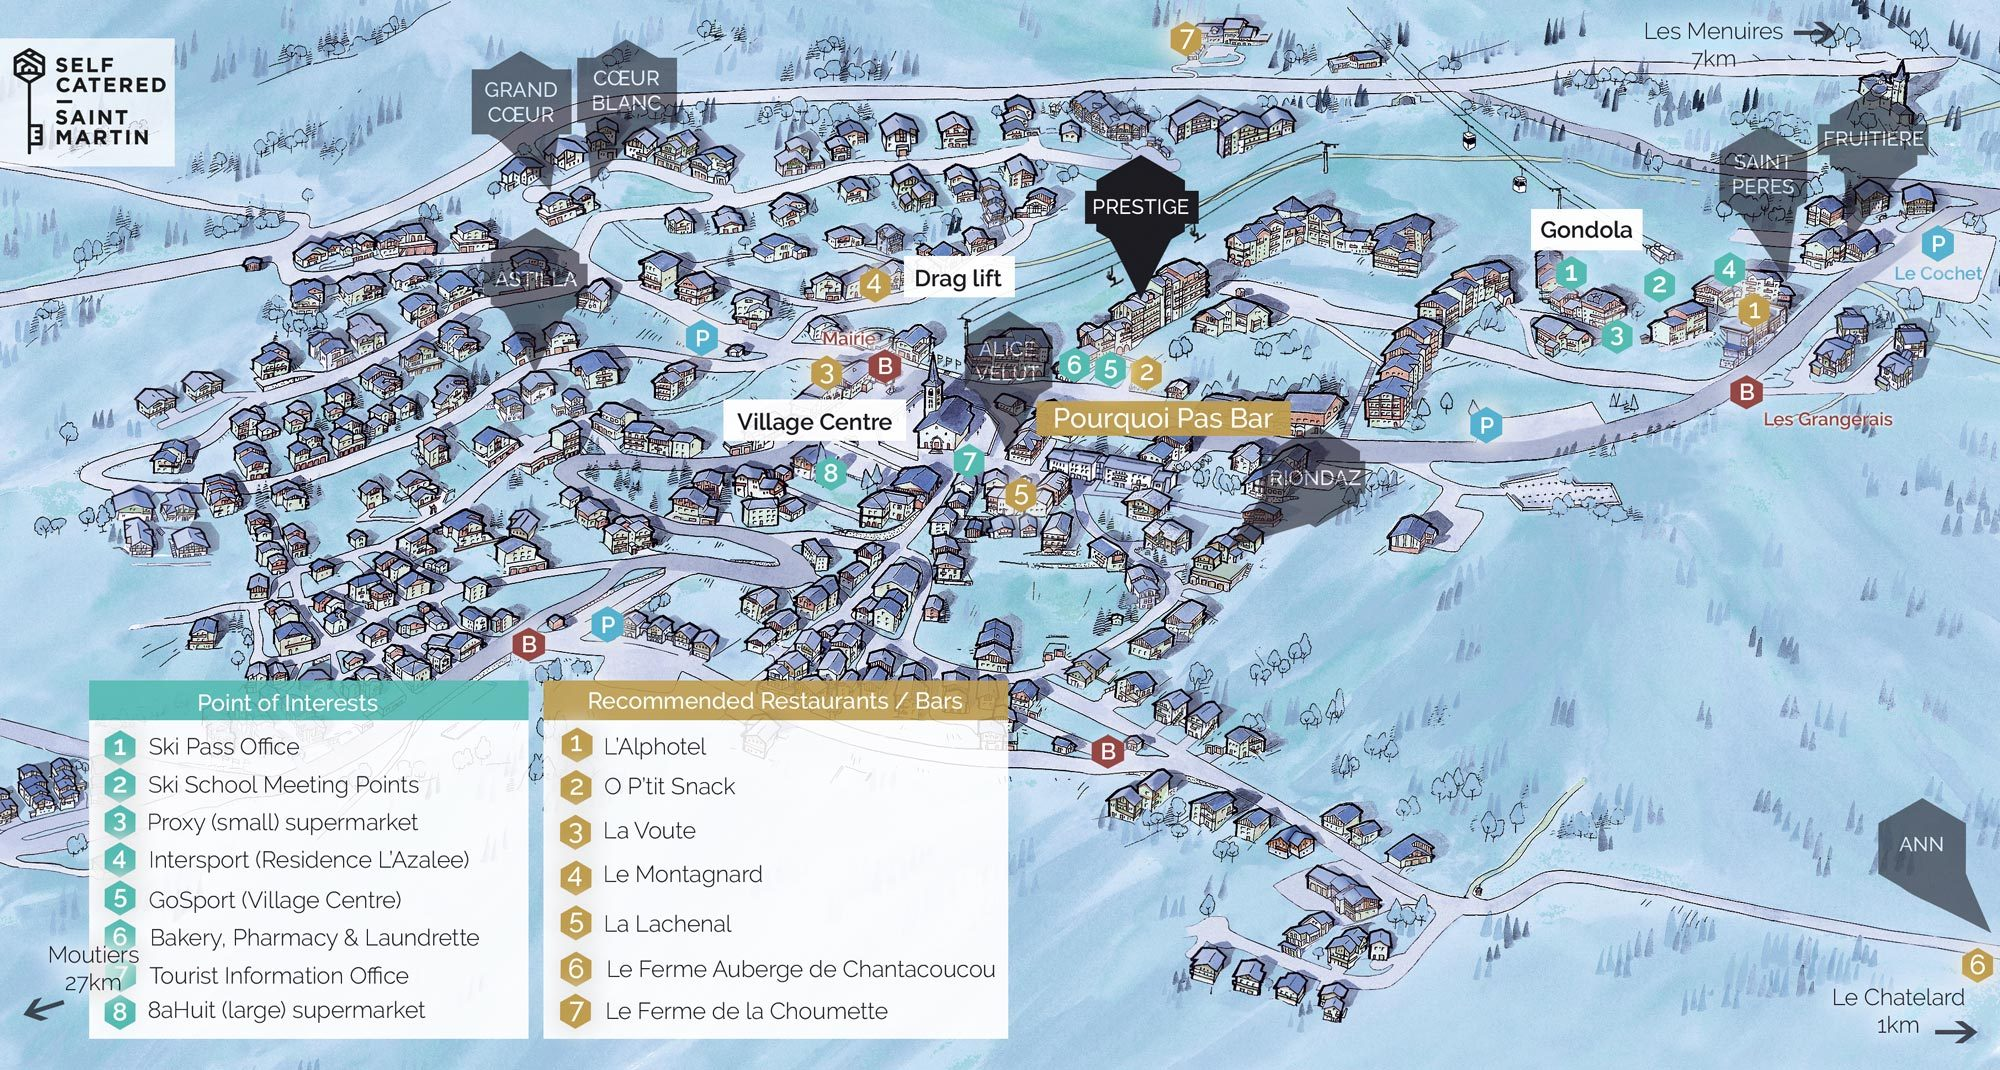 Chalet Prestige in St Martin de Belleville | Resort Map | Self Catered - Saint Martin